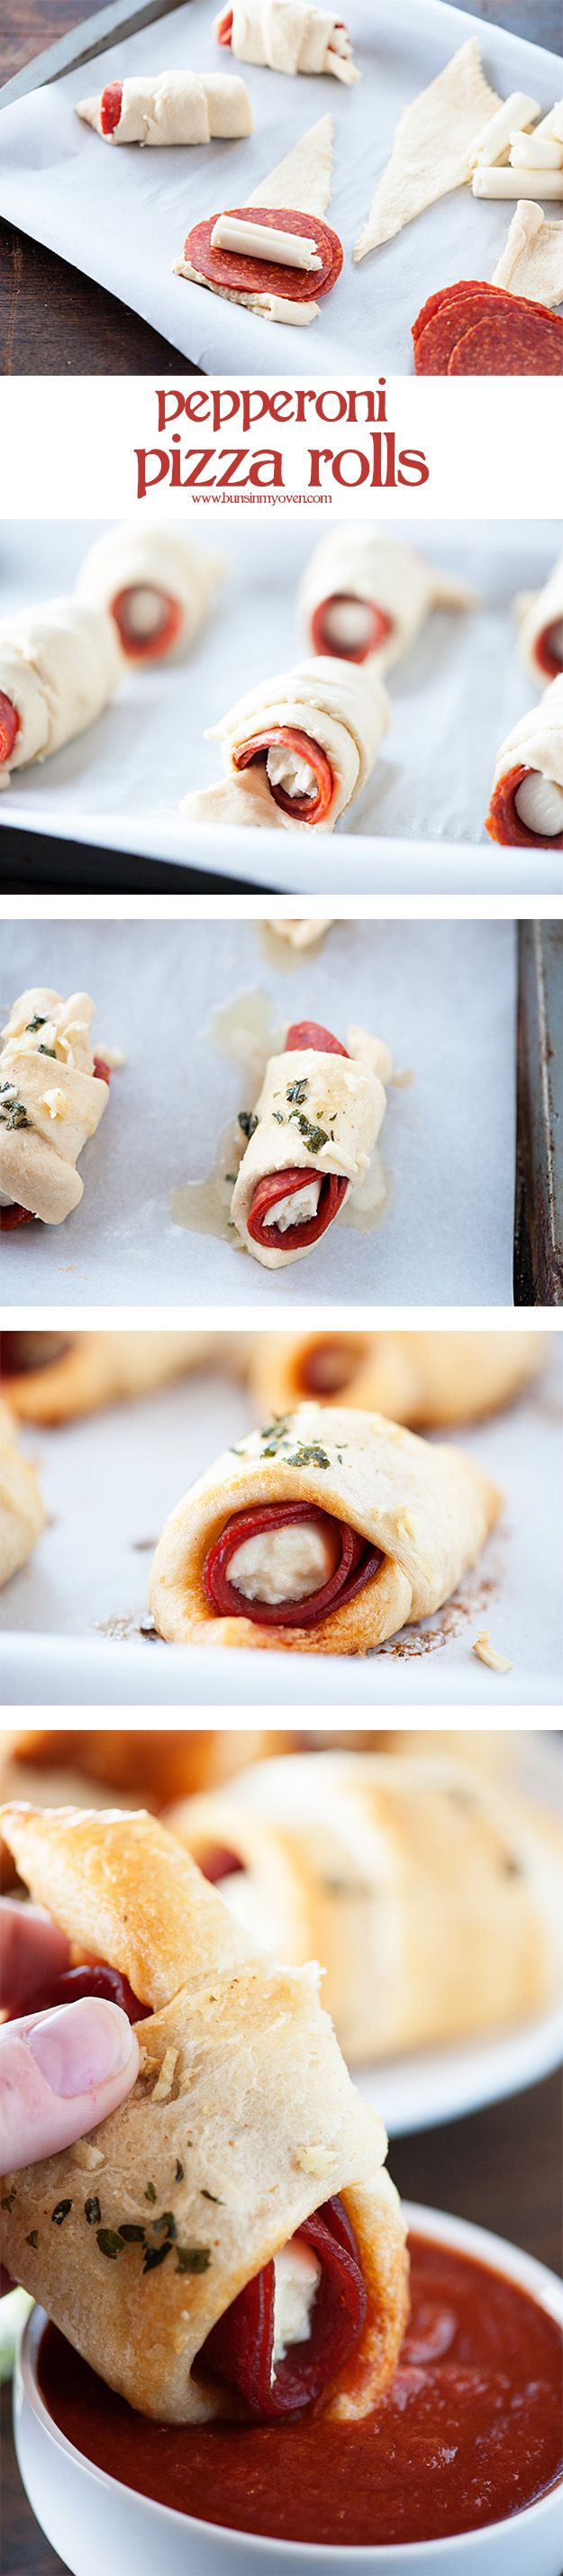 Easy to make pepperoni pizza rolls!